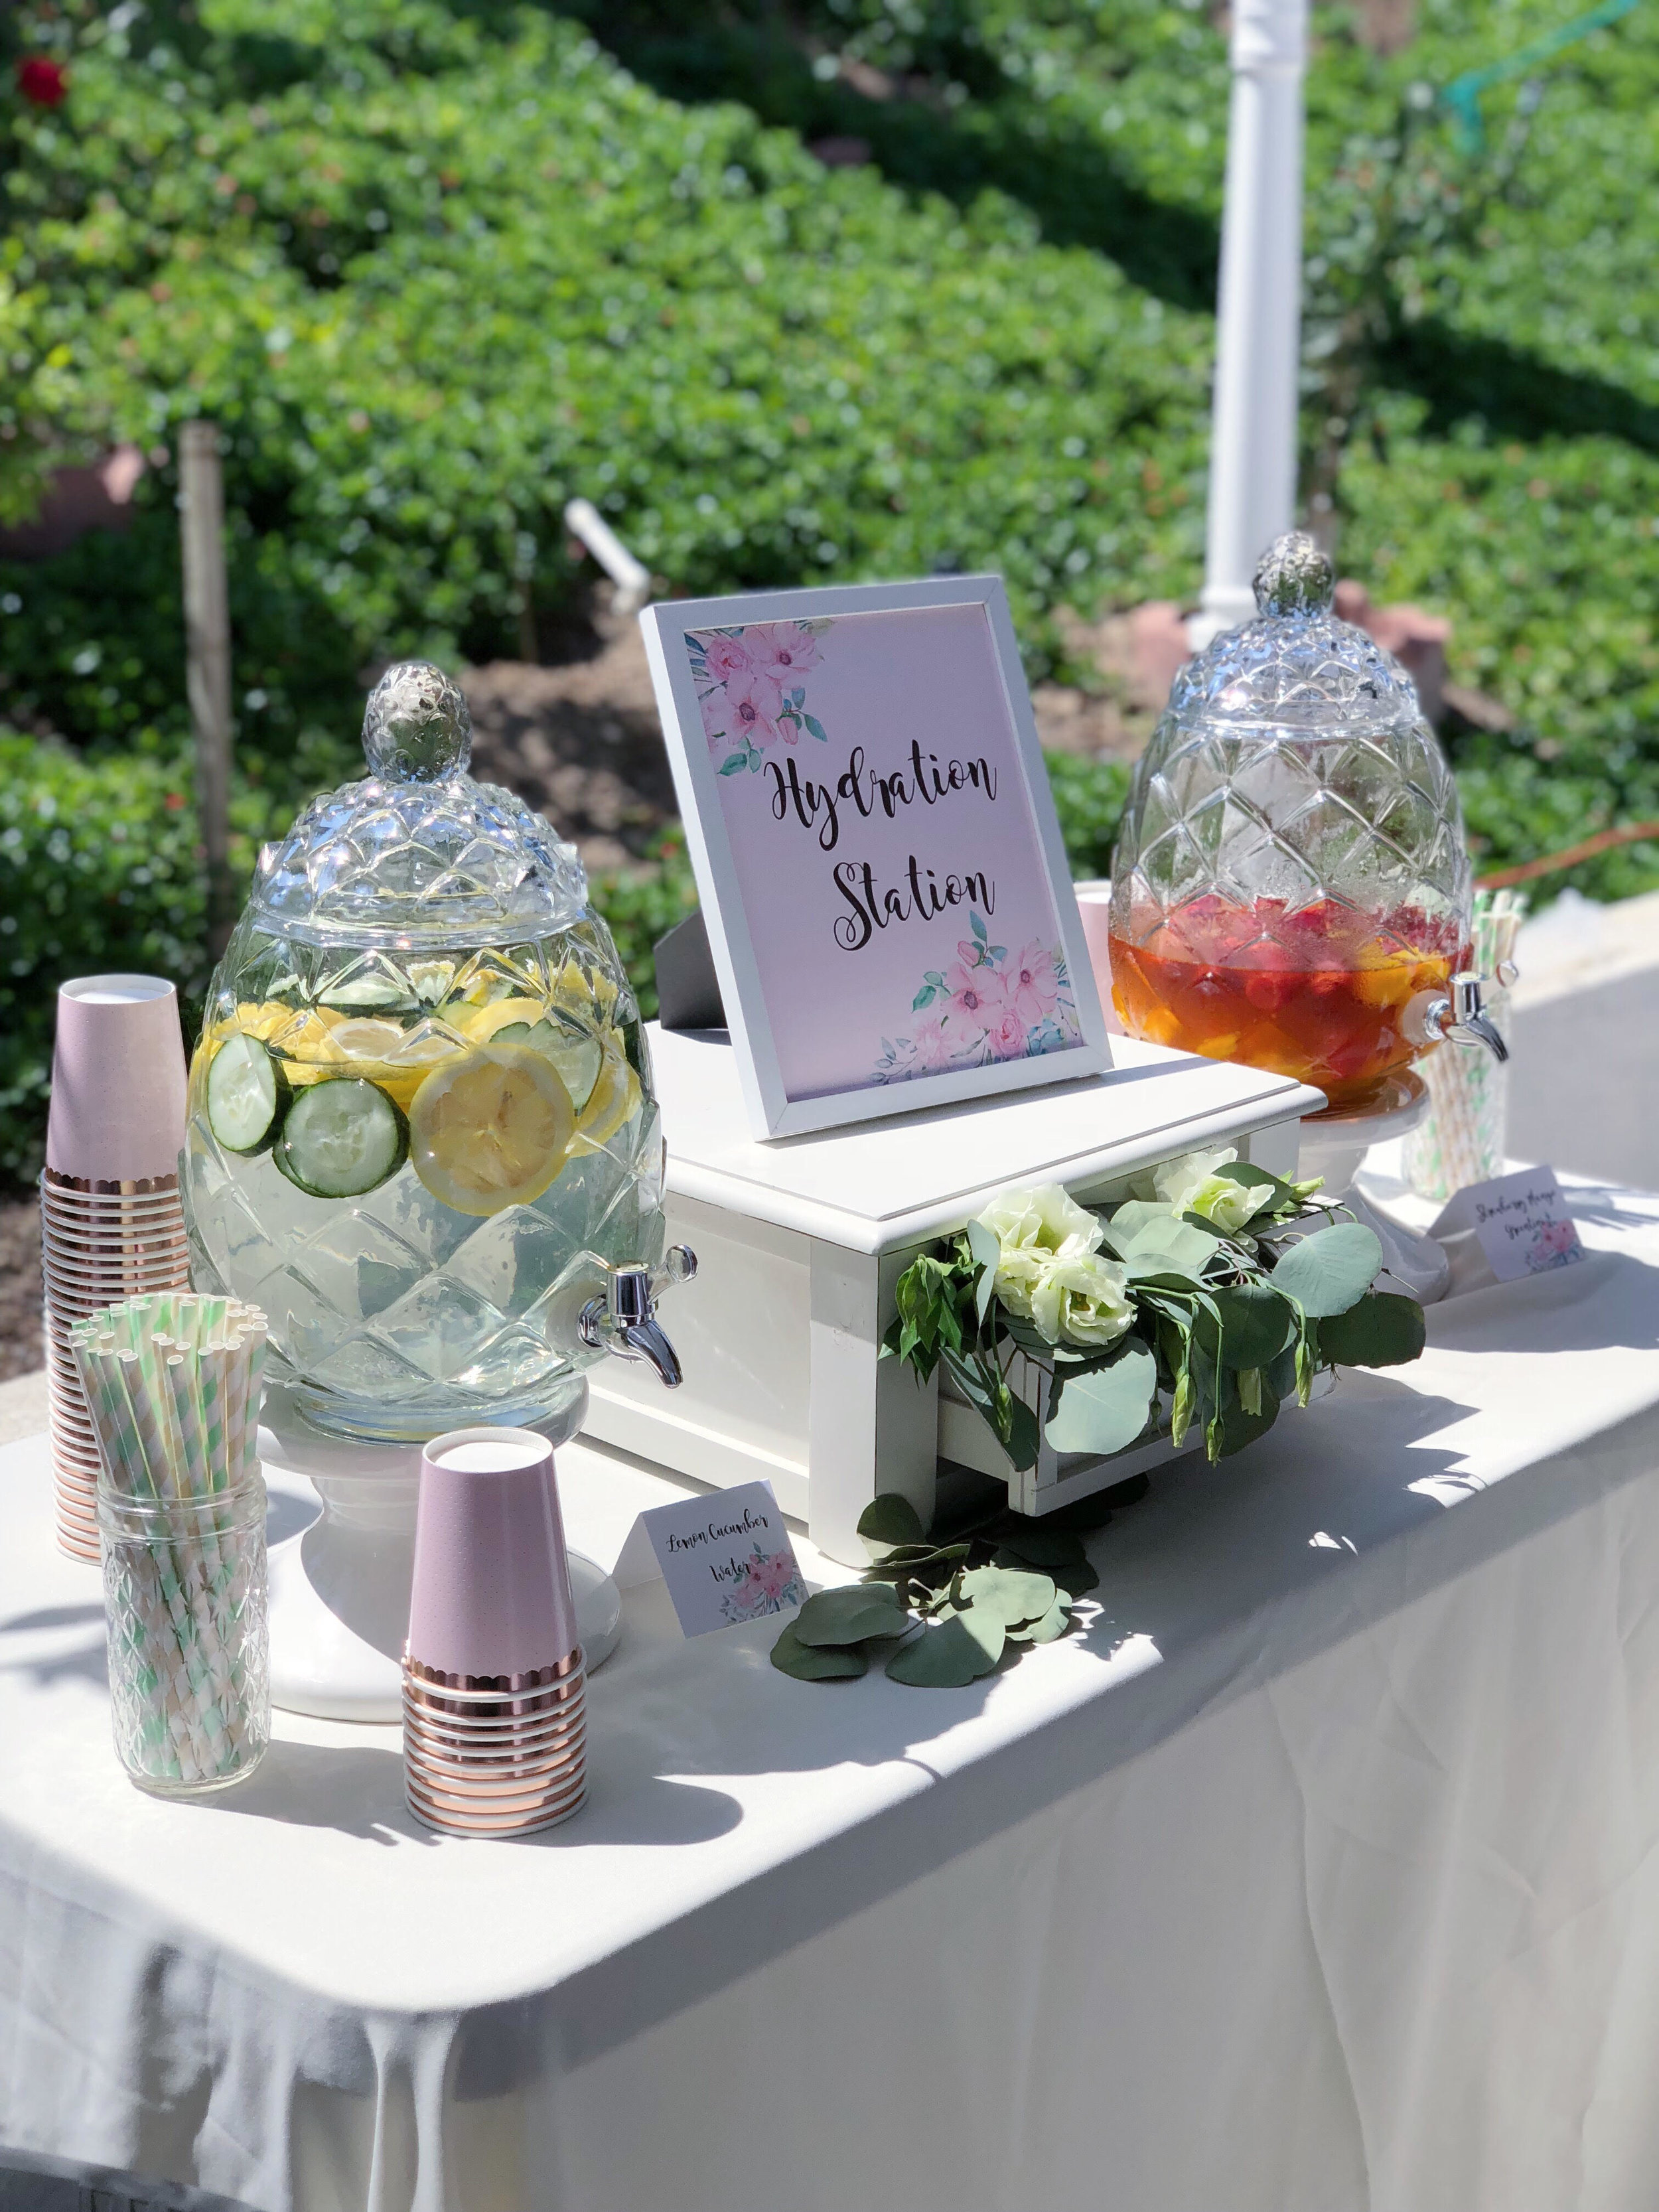 Hydration Station-Garden Bridal Shower-Bridal Shower-www.SugarPartiesLA.com.jpg